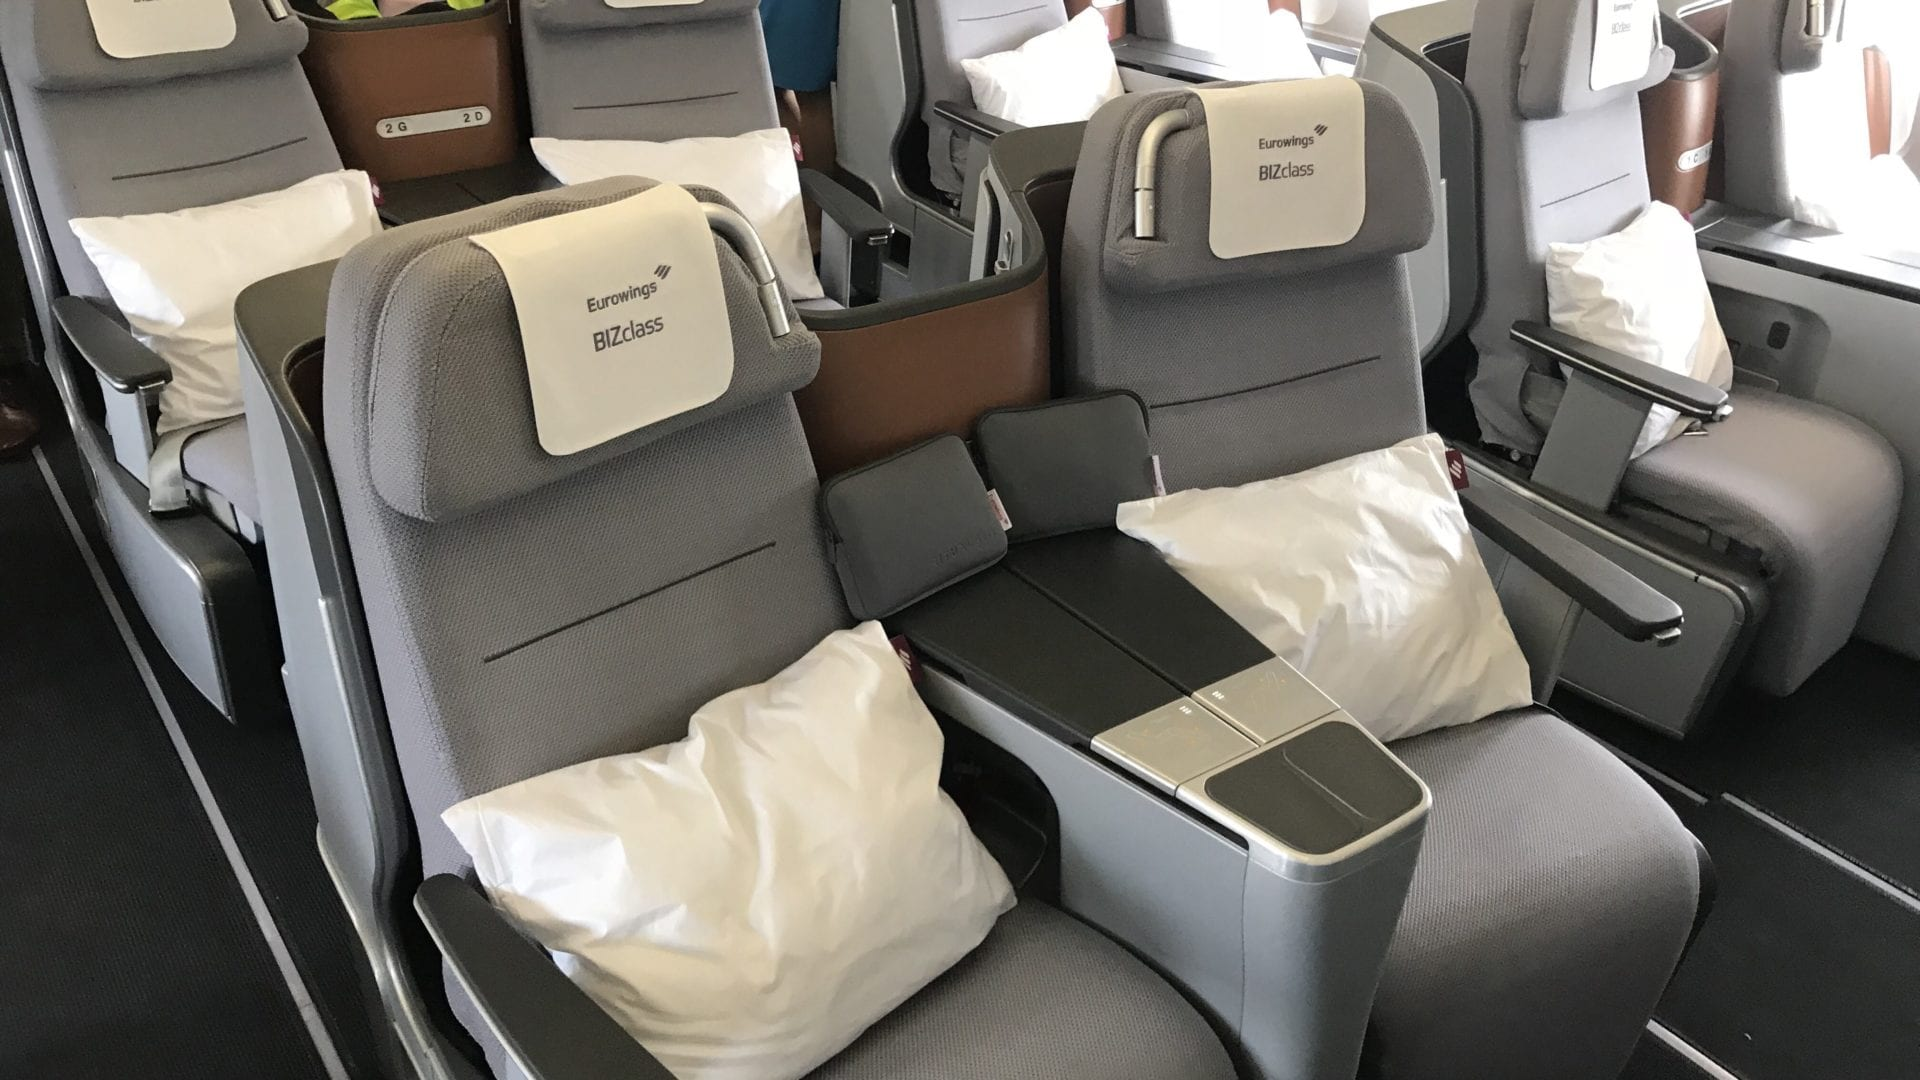 Eurowings A340 Business Class